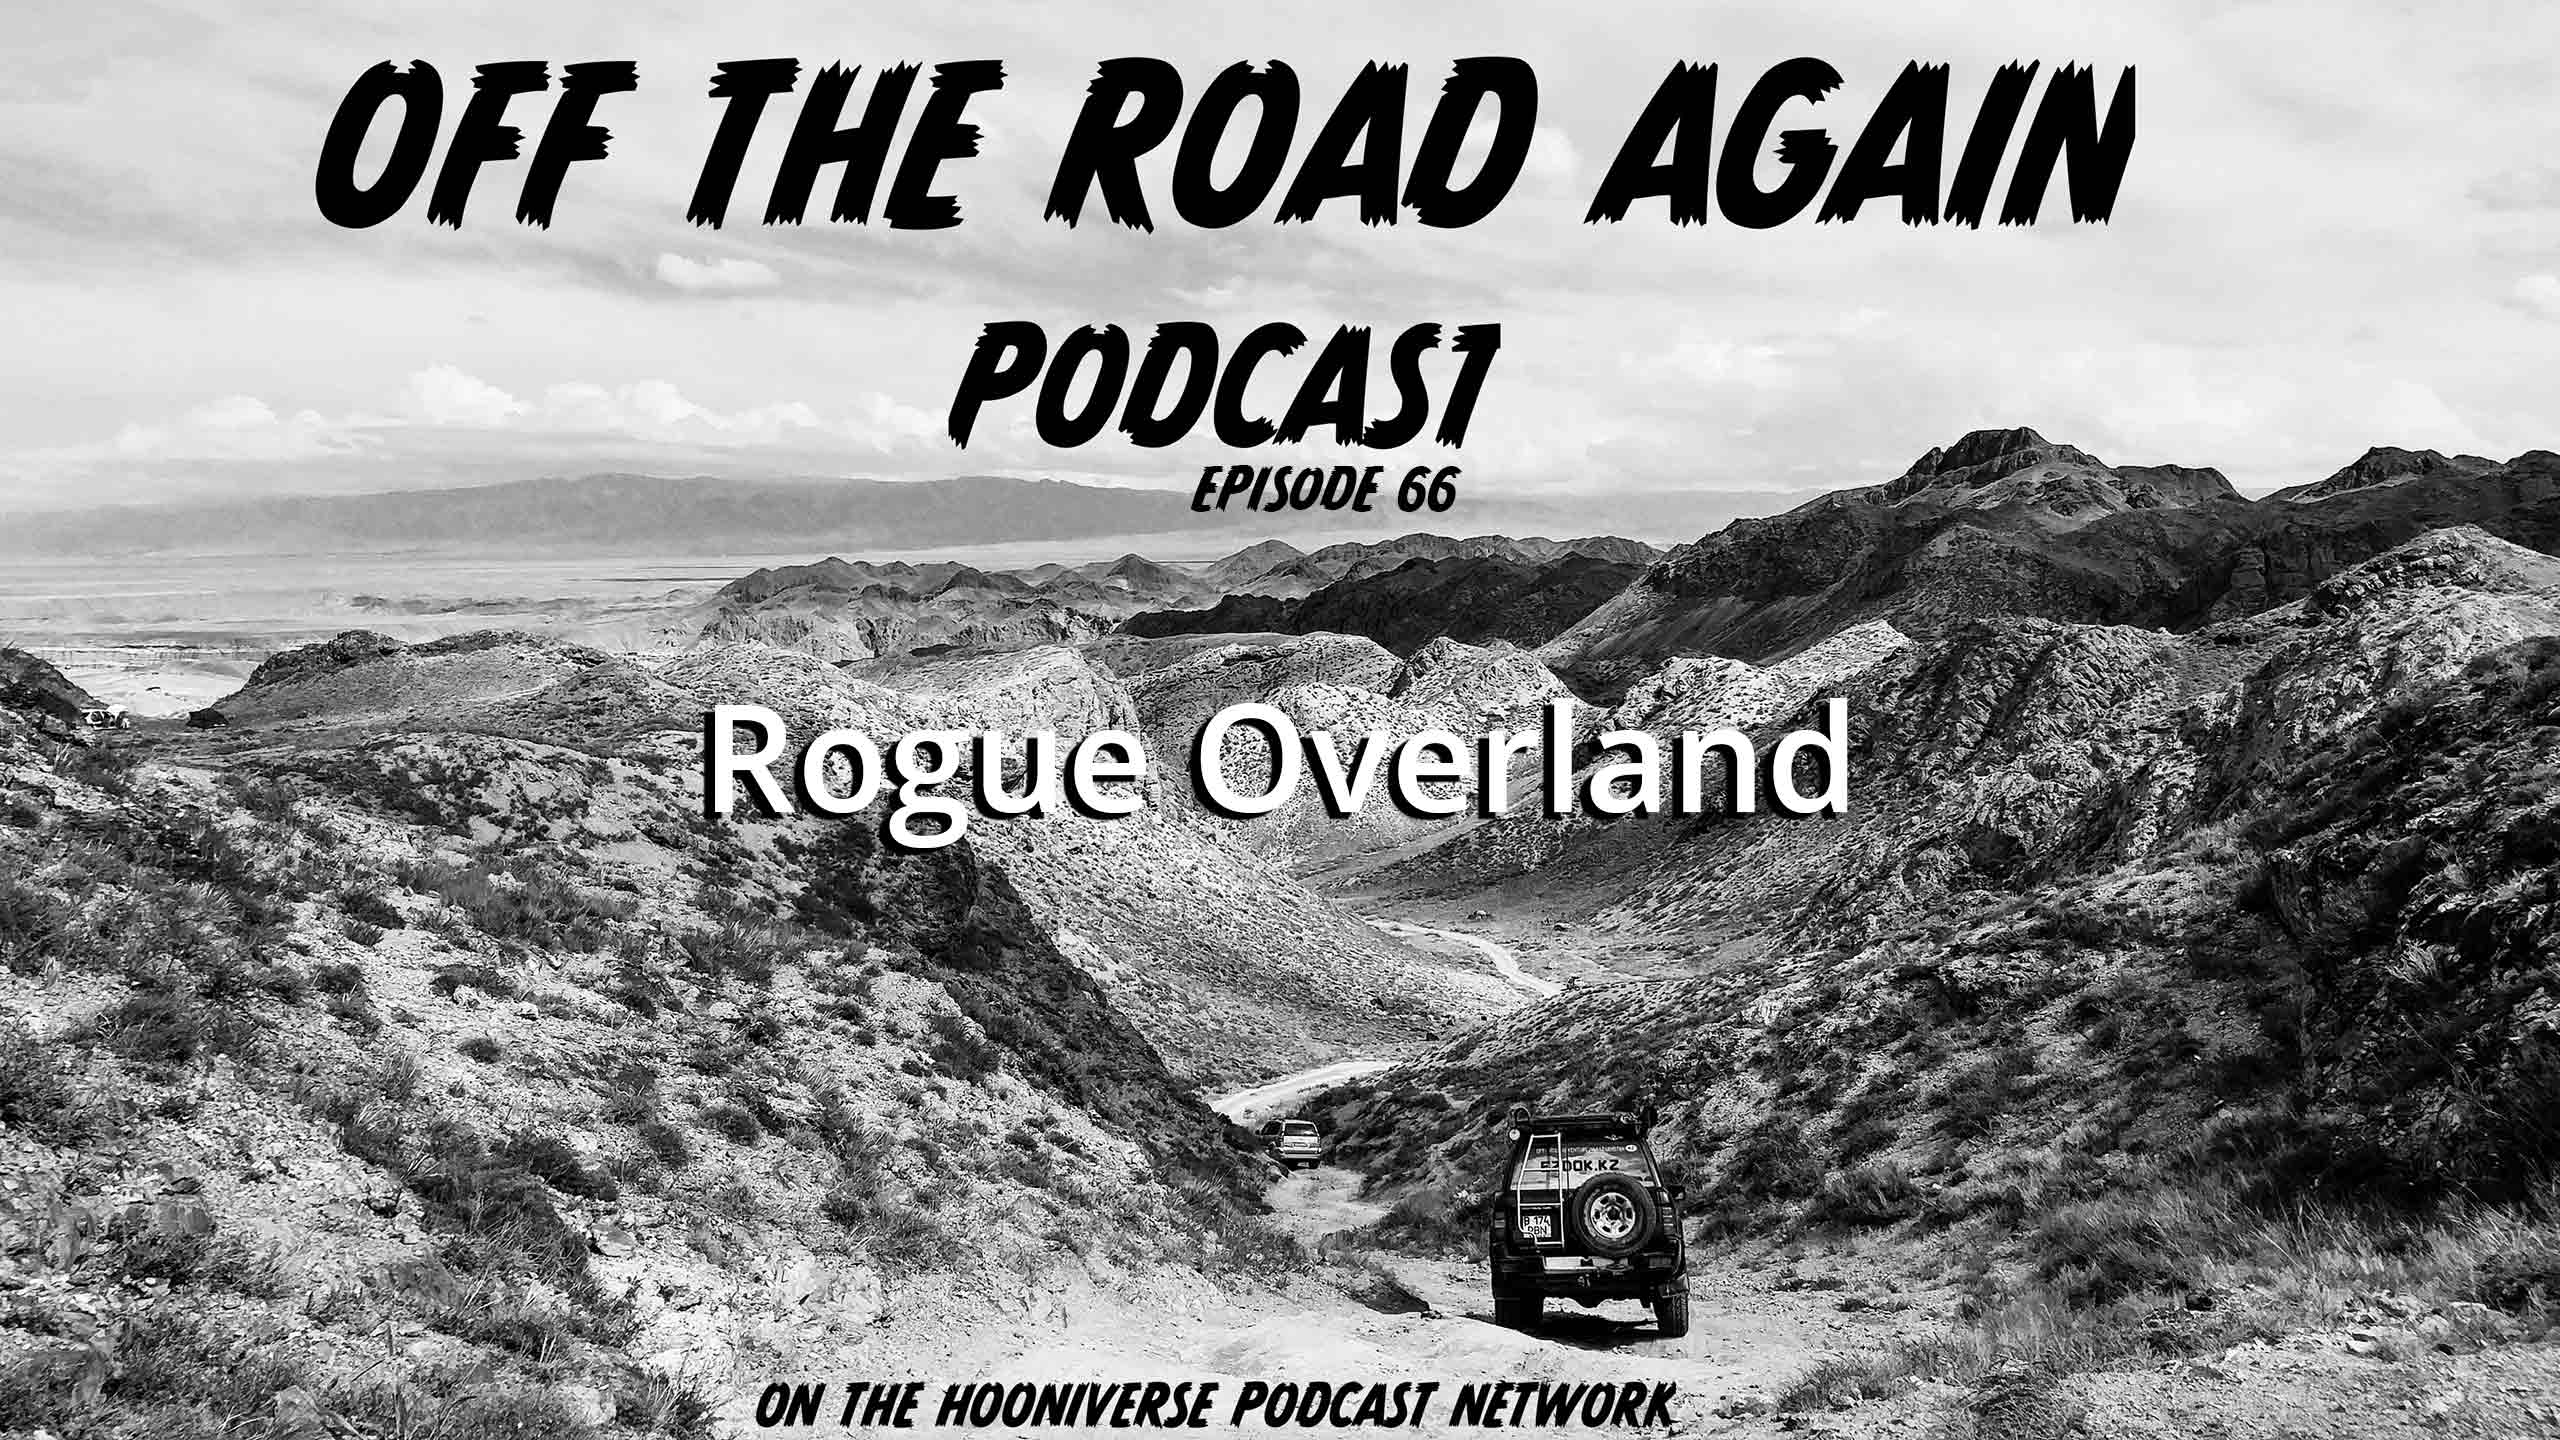 Rogue-Overland-Off-The-Road-Again-Podcast-Episode-66